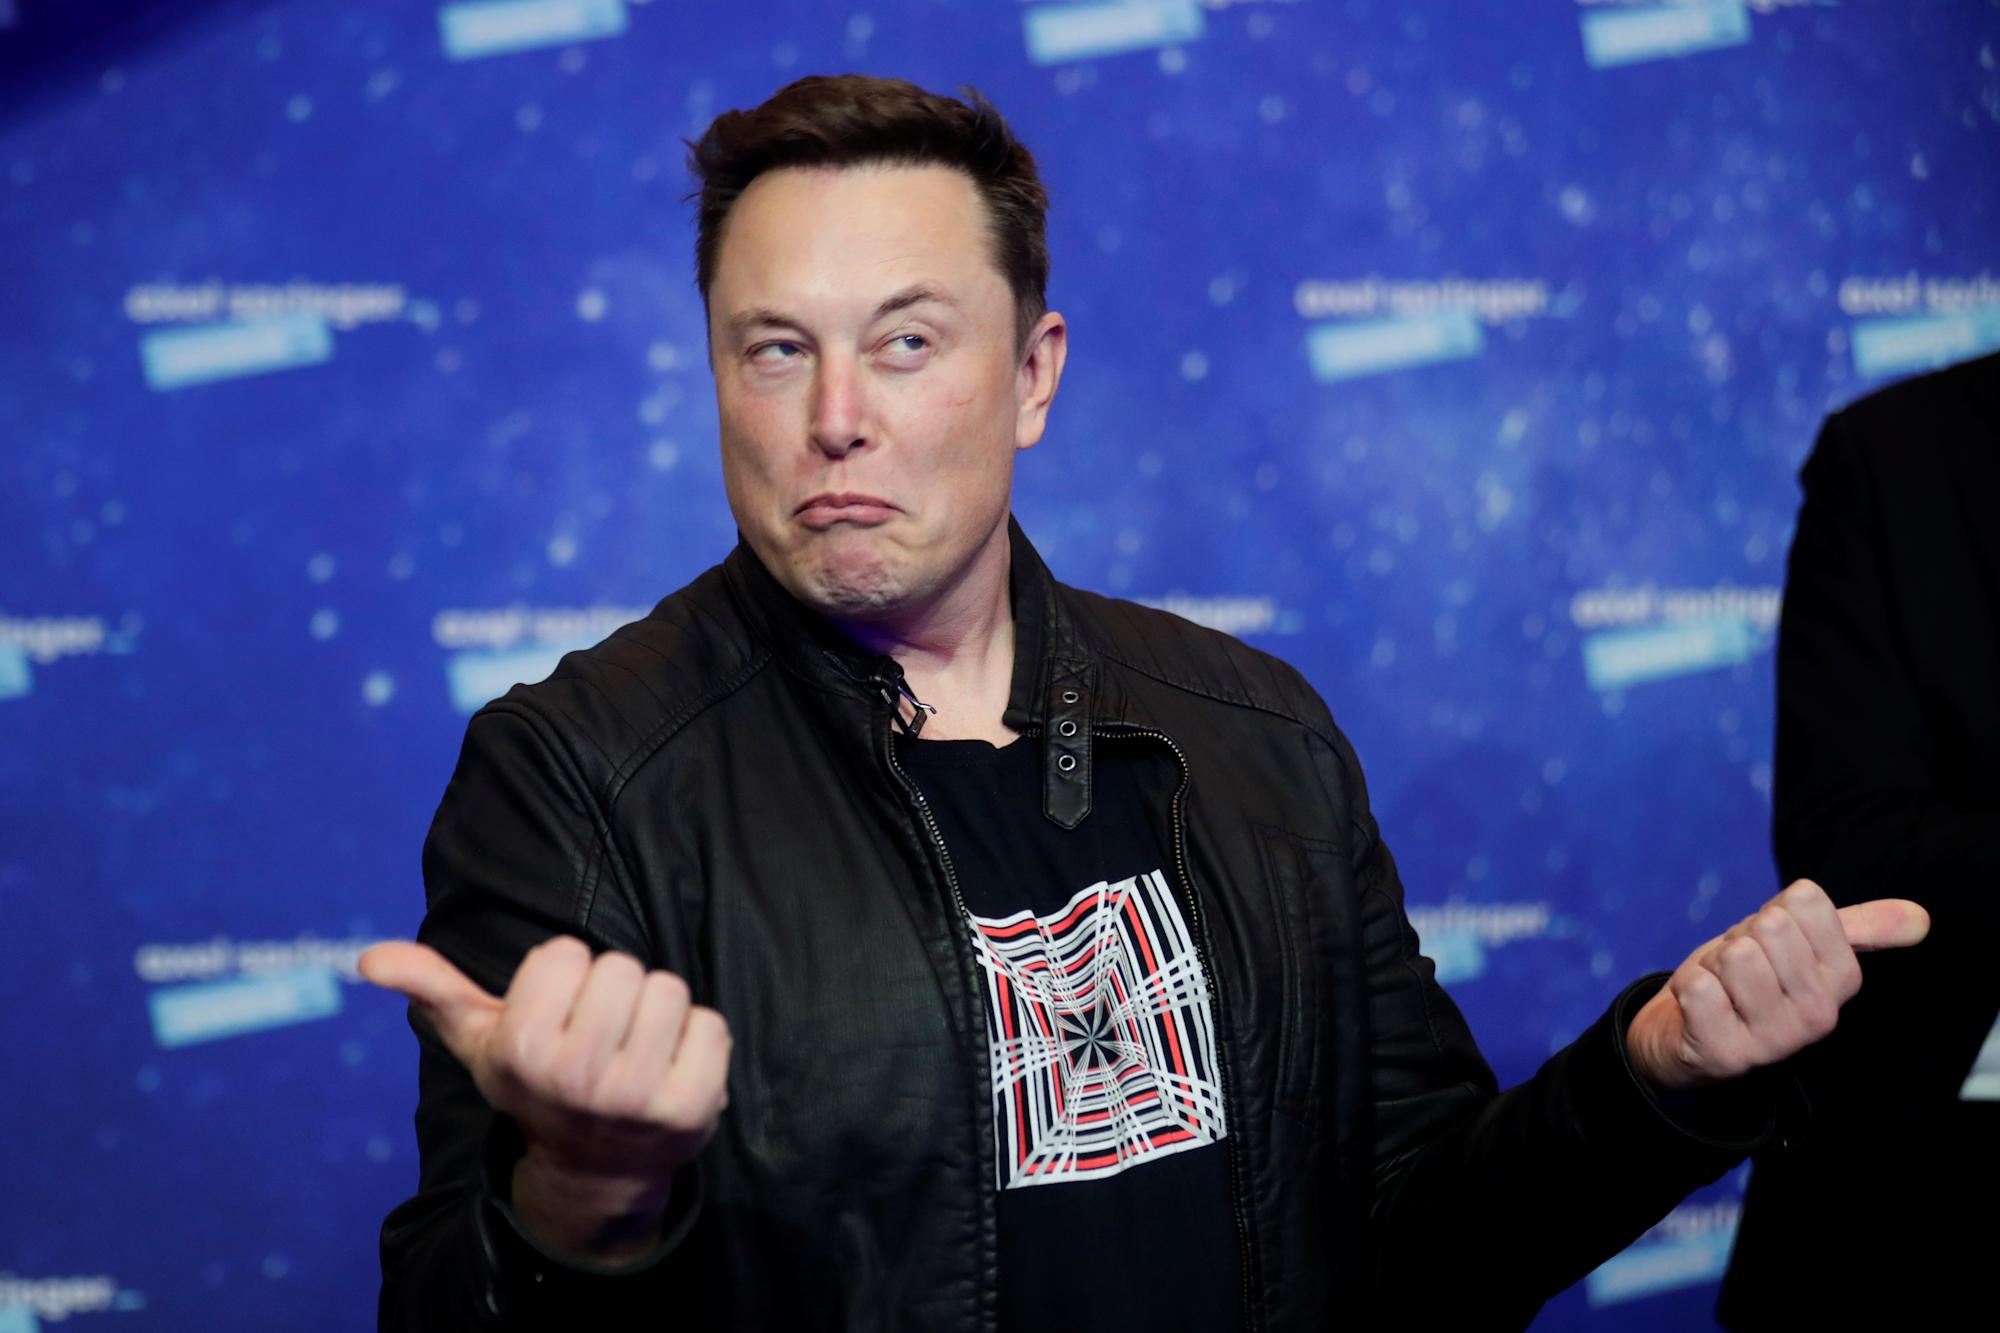 Elon Musk is 'a tourist in crypto,' Celsius Network CEO says